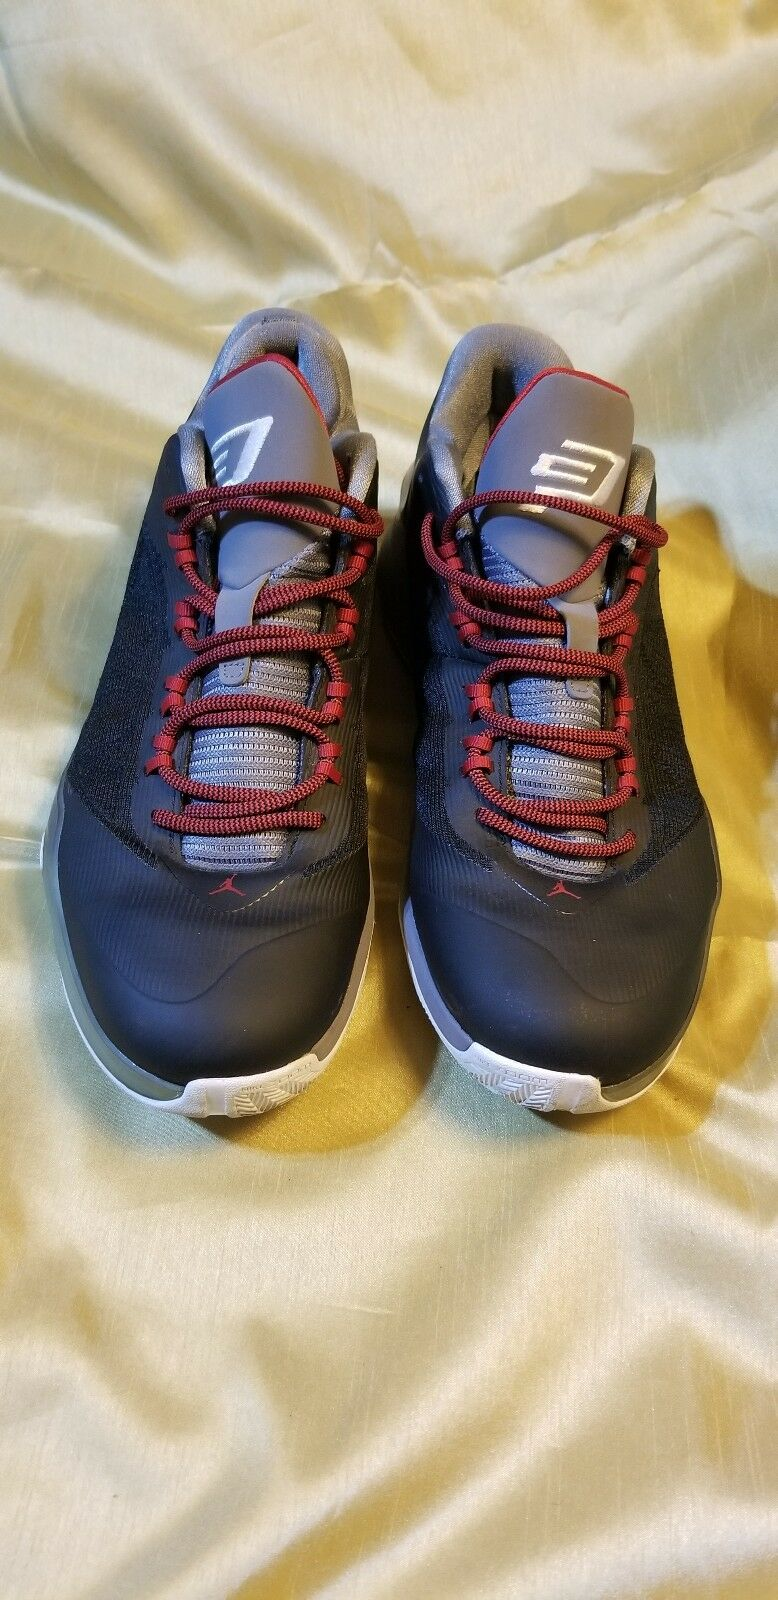 Mens Nike Air Jordan CP3 VIII Basketball shoes Size 9.5 cleanee real nice